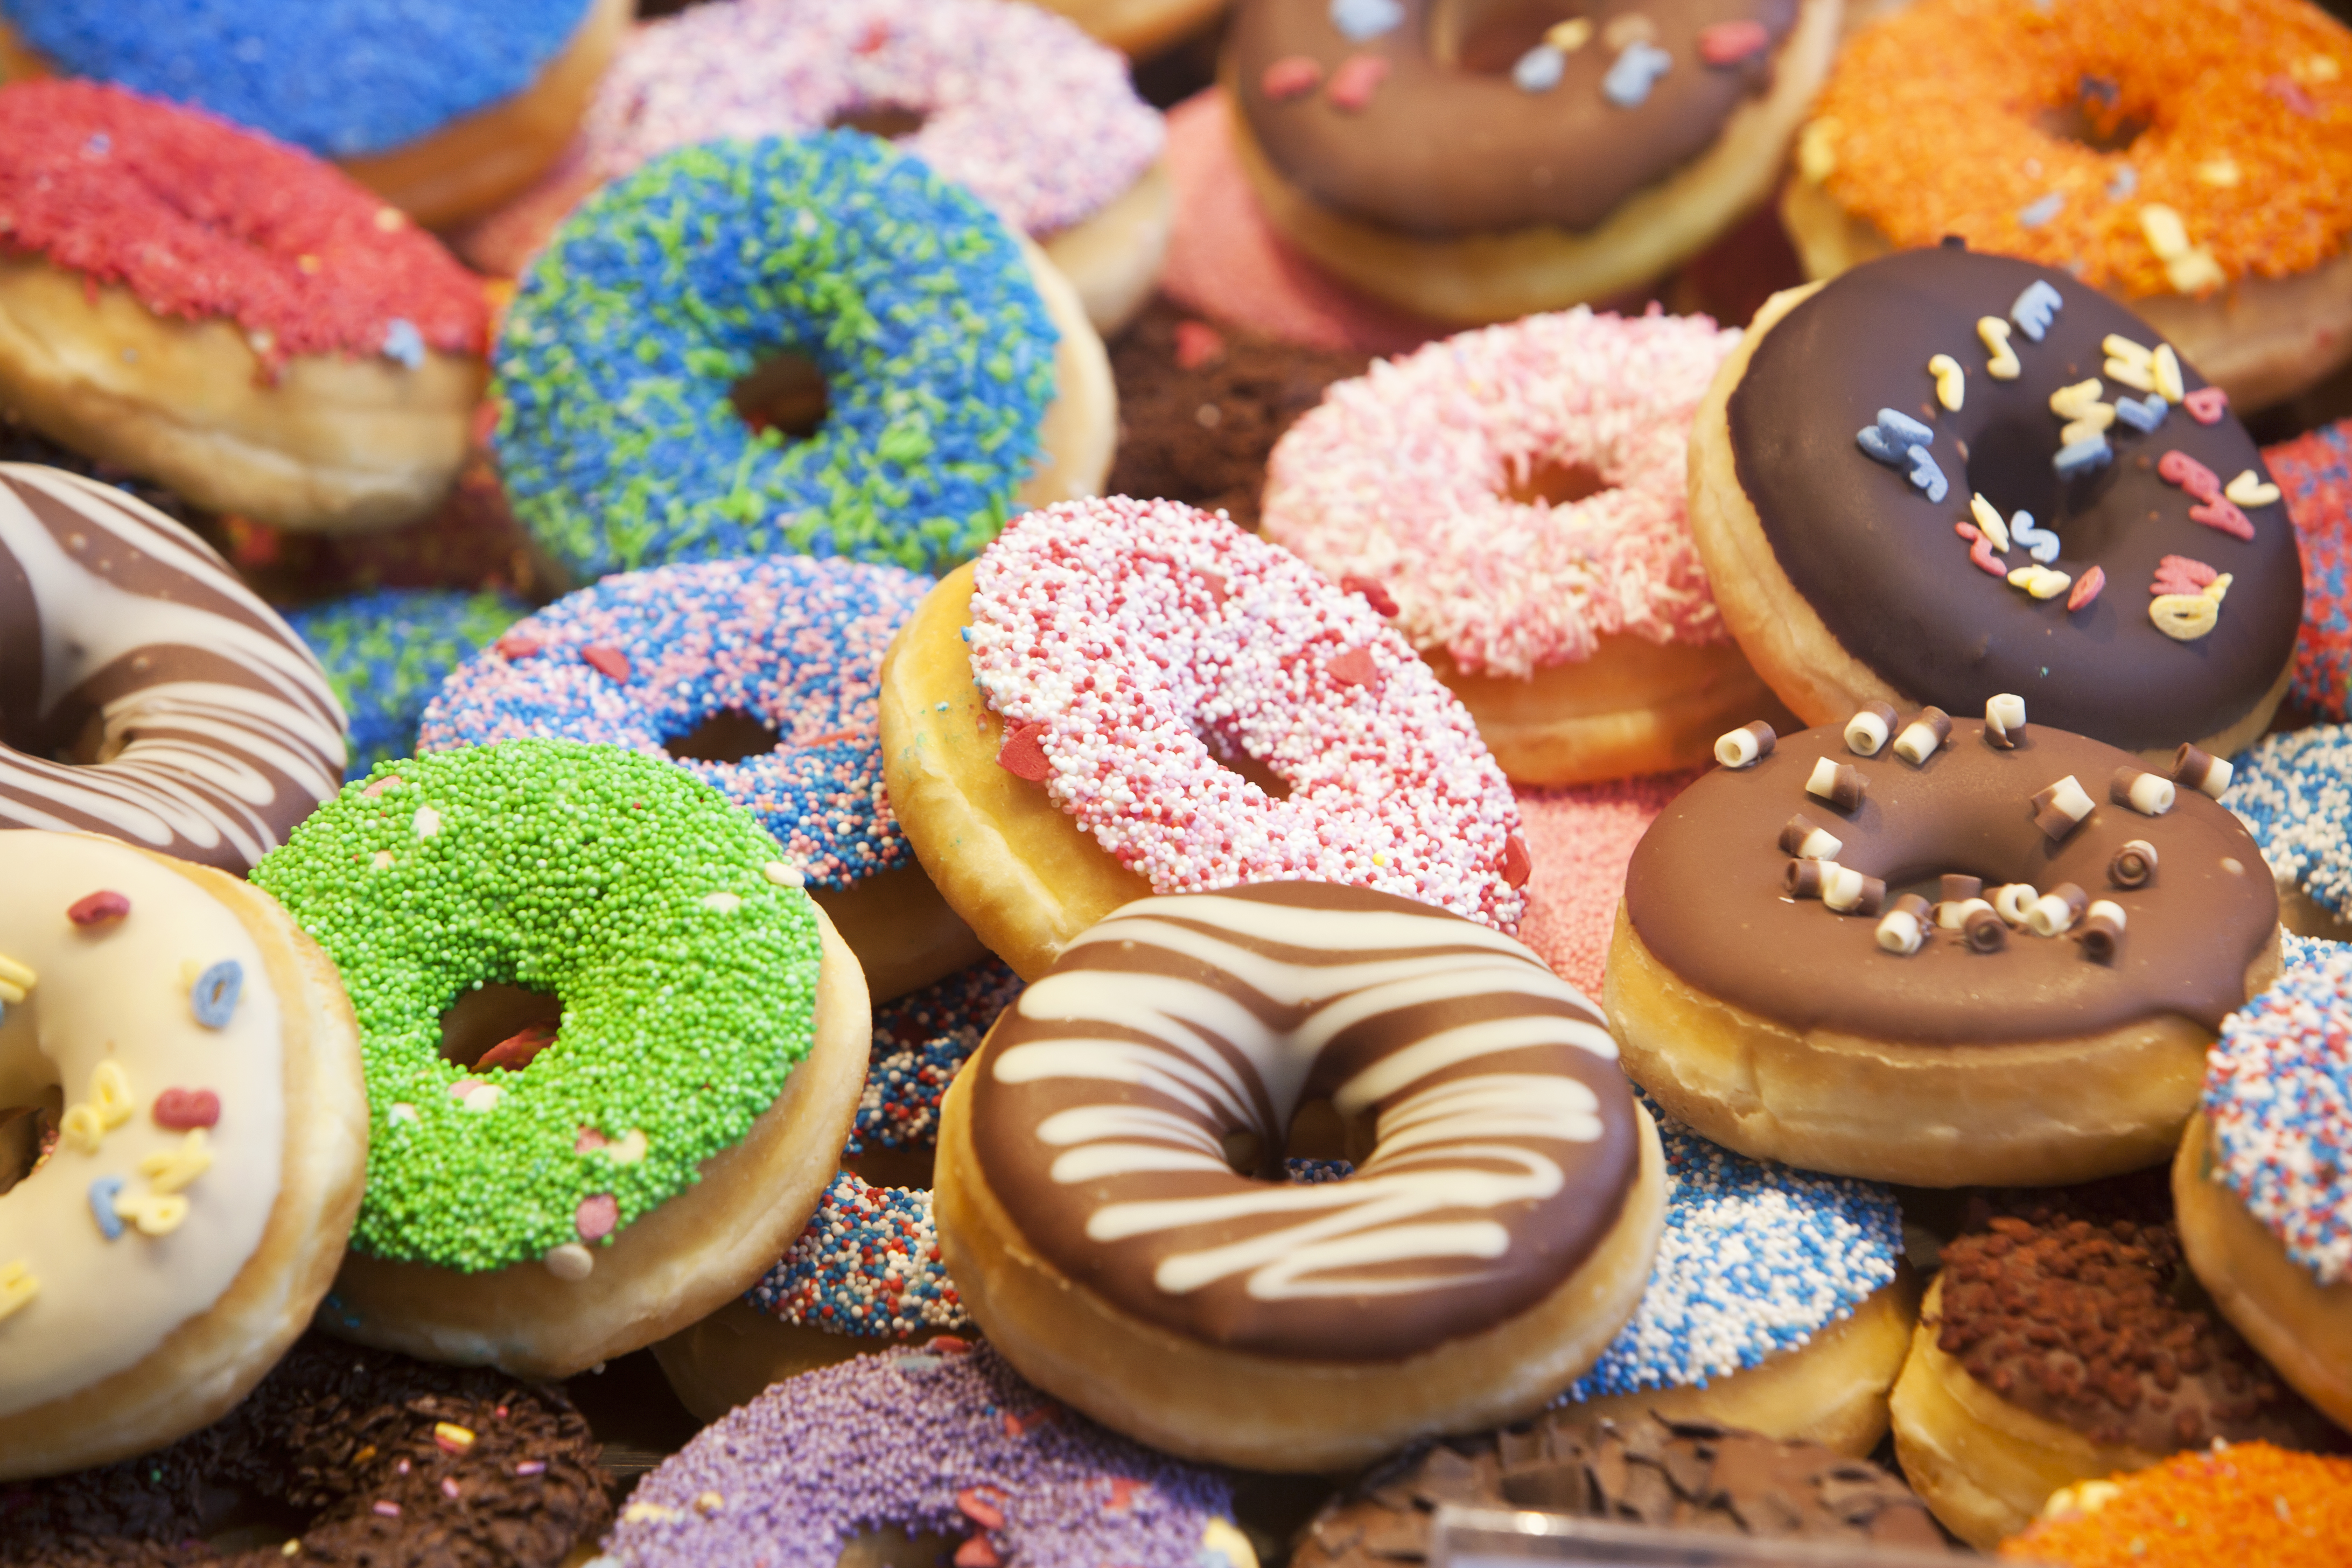 How to Start a Bakery Supply Store | Bizfluent